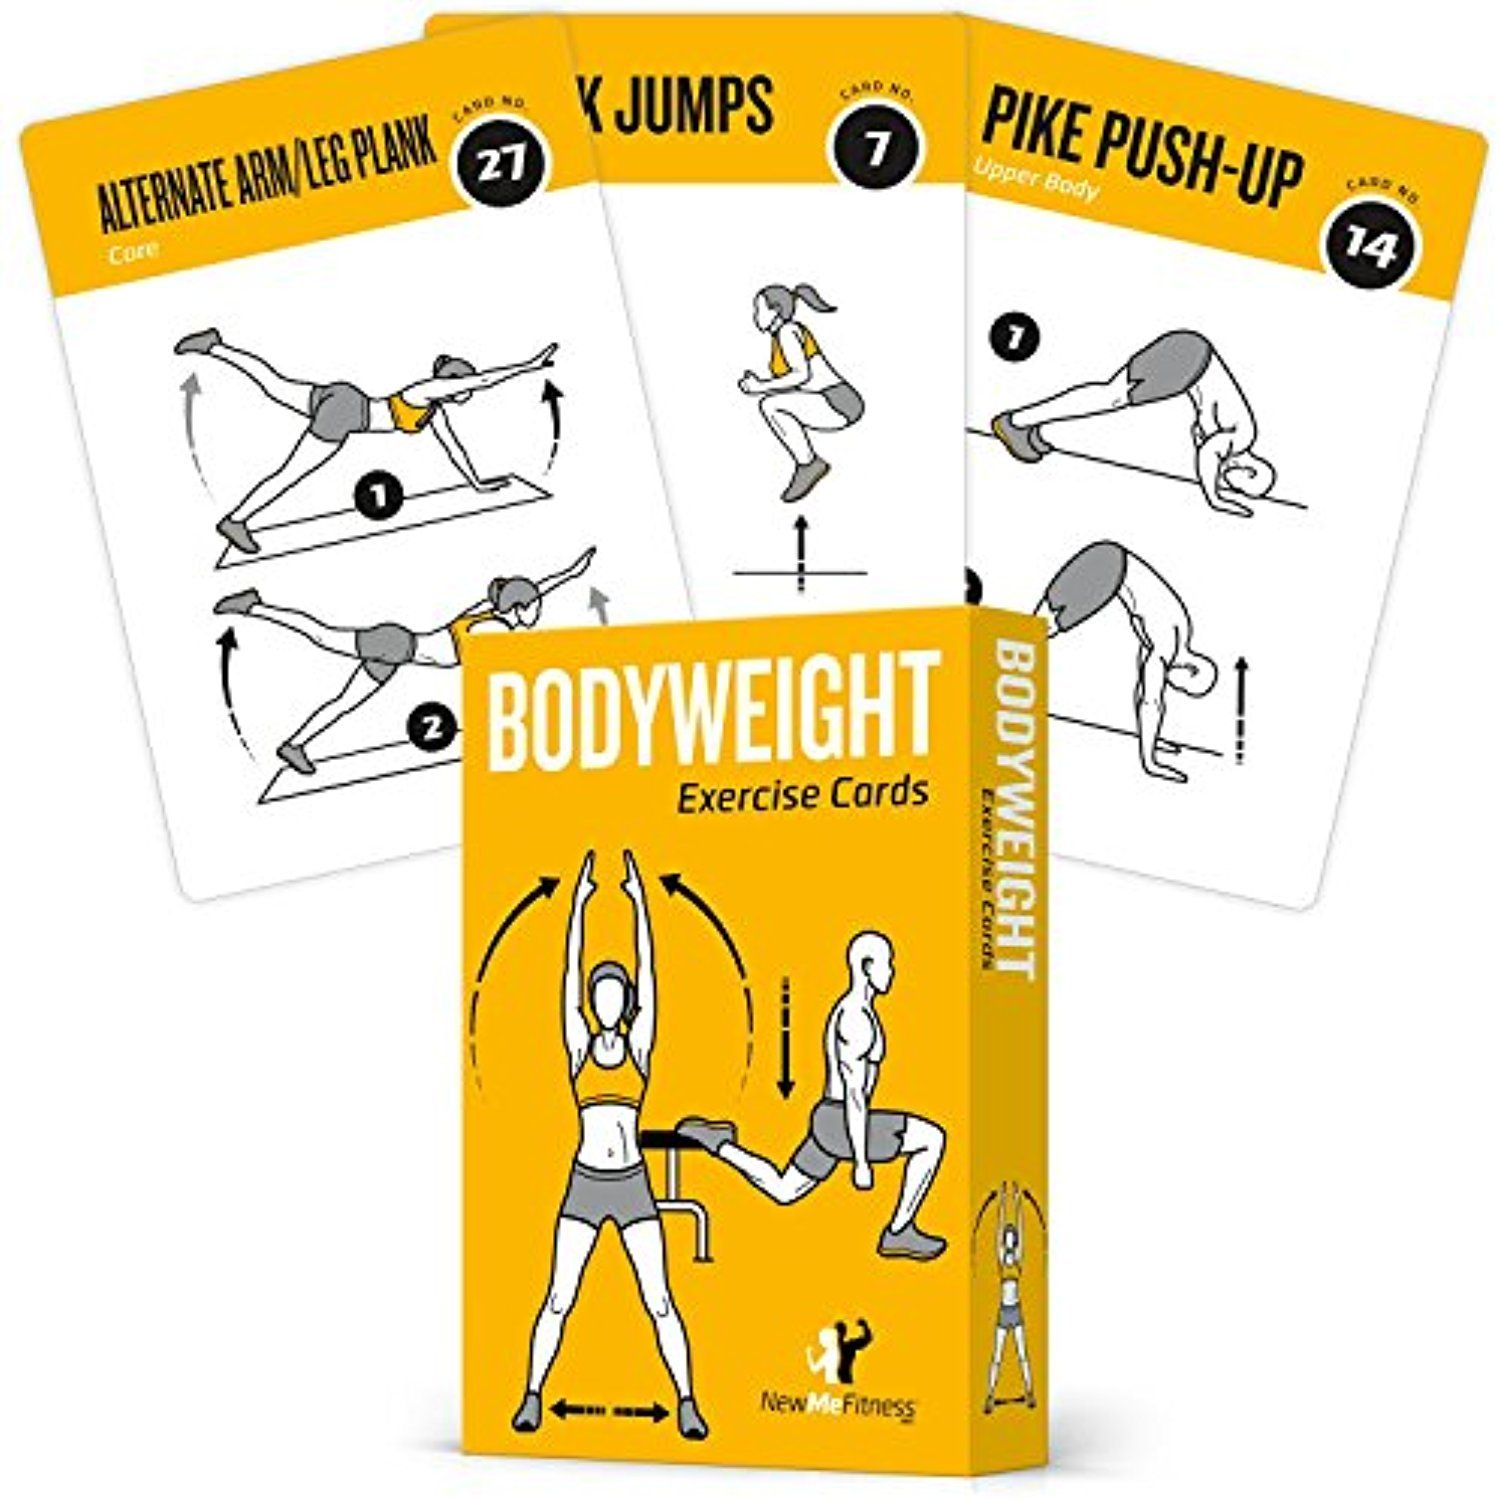 EXERCISE CARDS BODYWEIGHT Home Gym Workout Personal Trainer Fitness Program  Guide Tones Core Ab Legs Glutes Chest Bicepts Total Upper Body Workouts ...